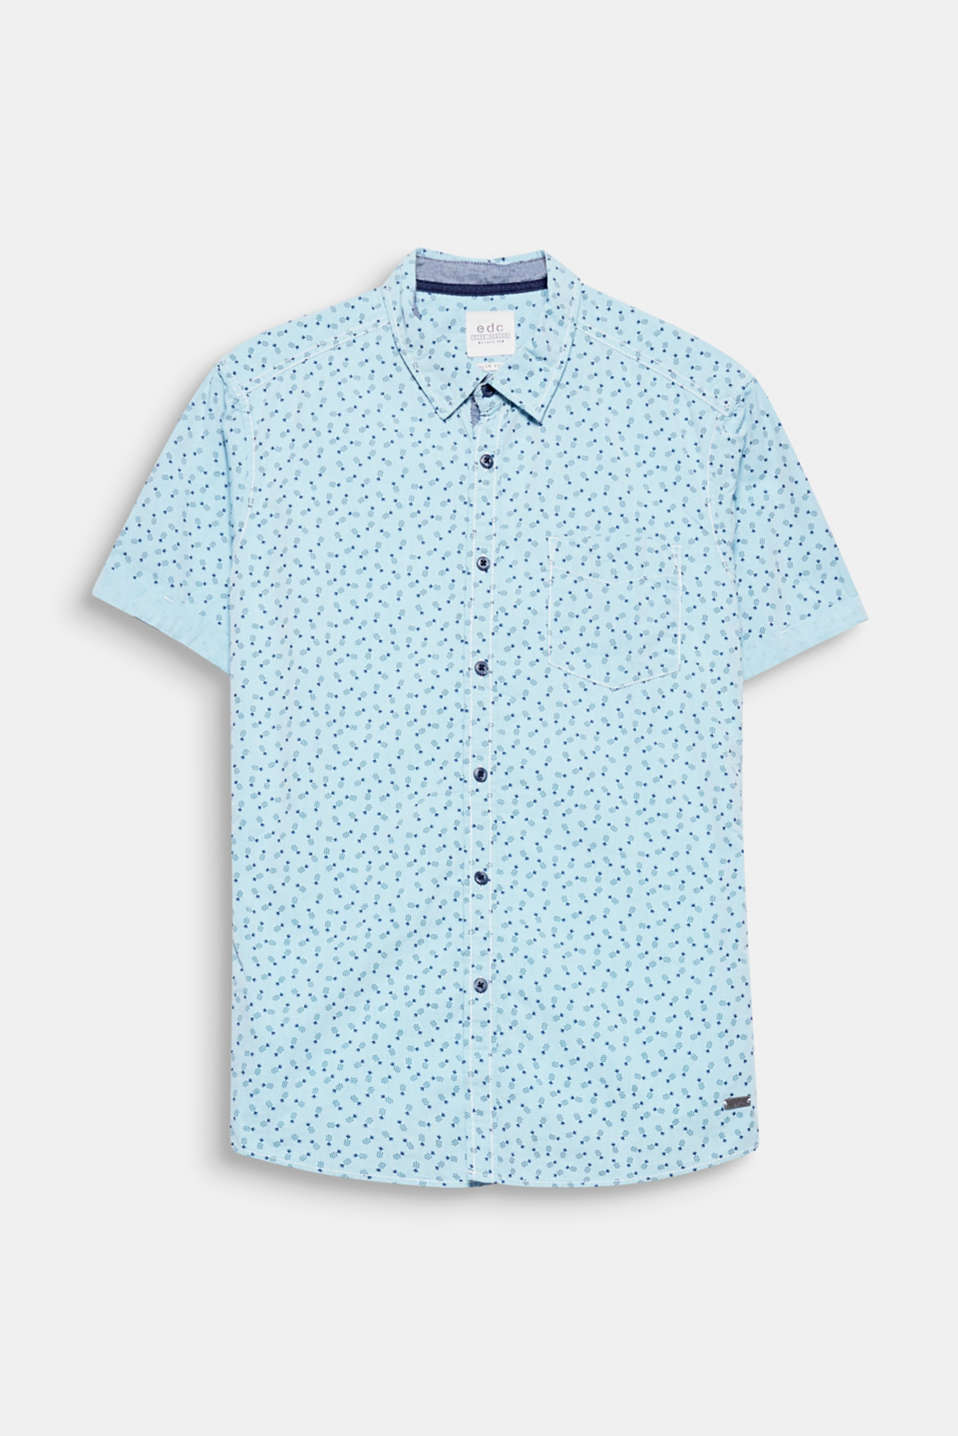 The stylised pineapple print makes this short sleeve shirt a light and fruity essential piece for summer.